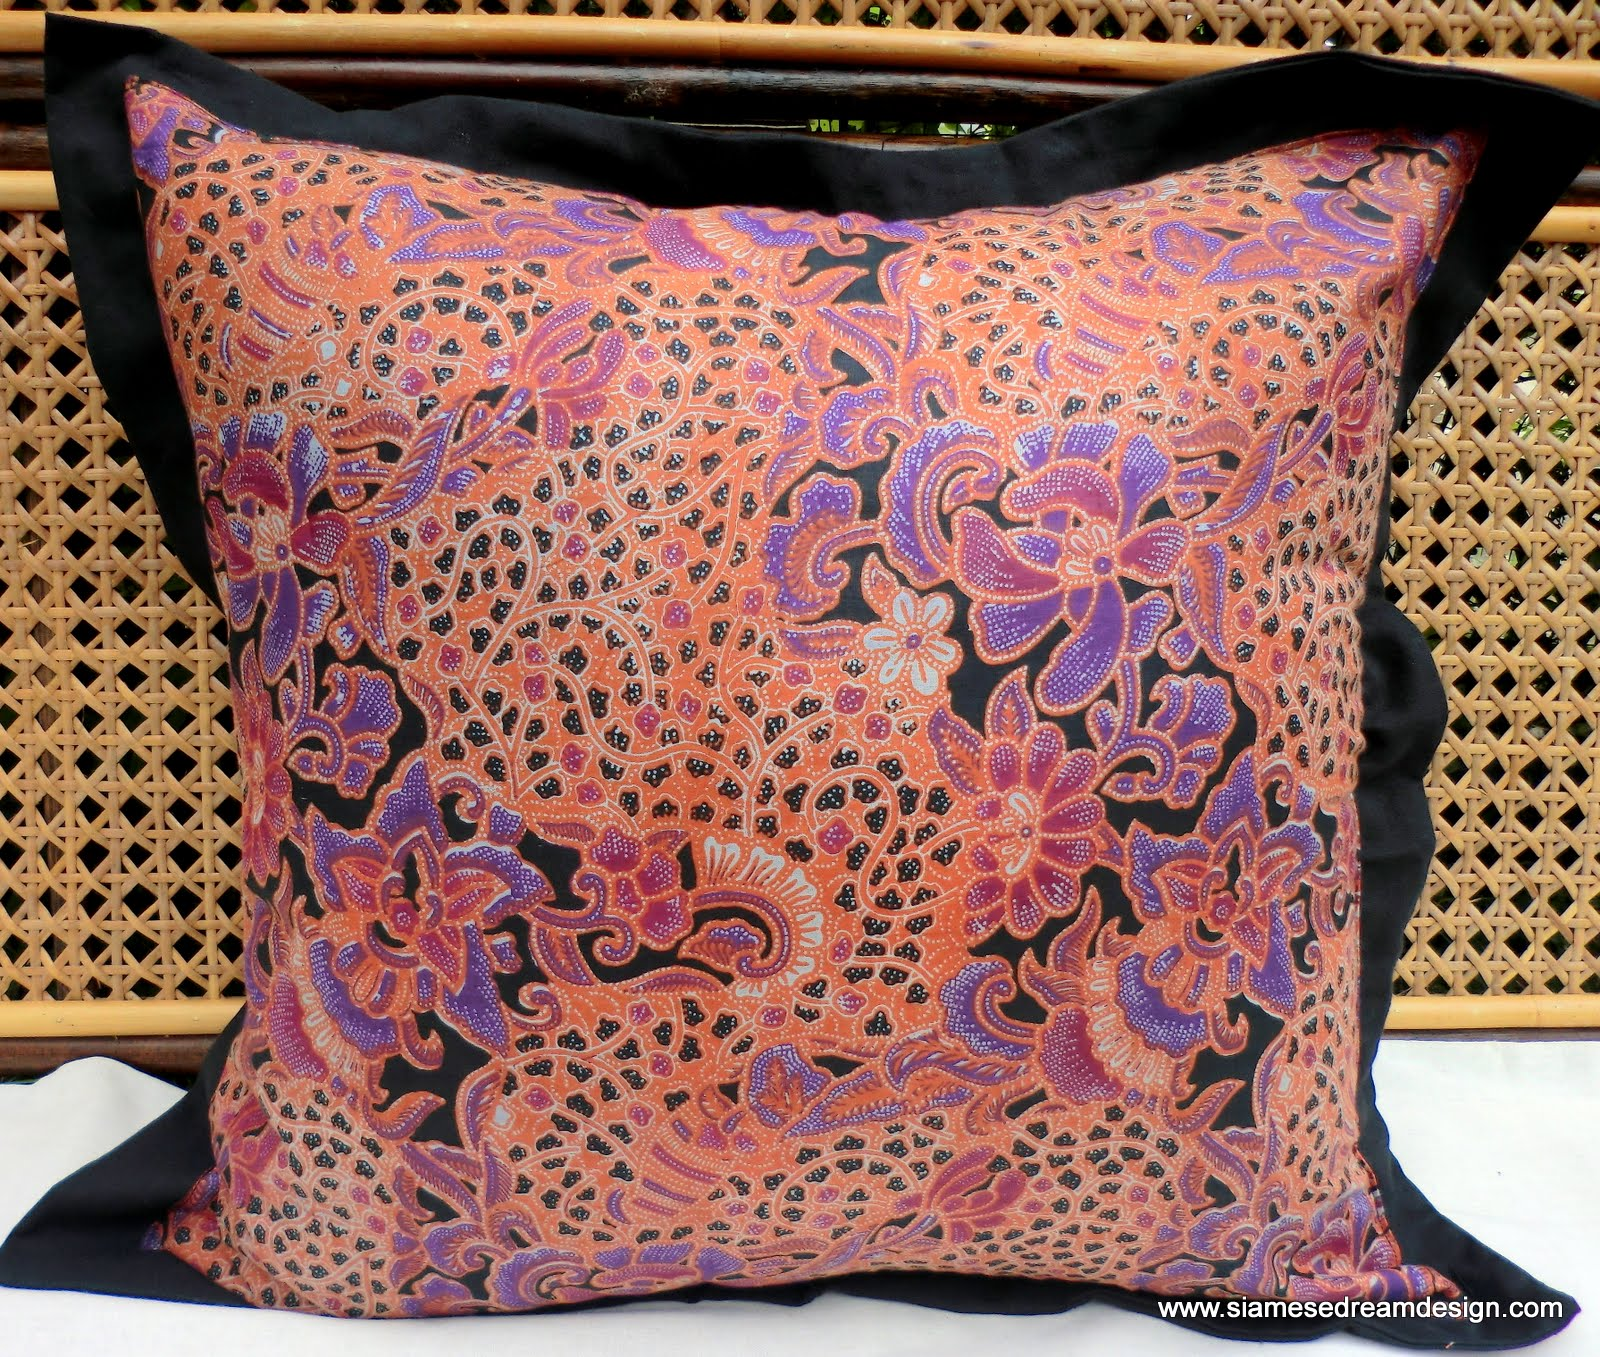 XL Floor Pillow Or Cushion Cover In Colorful Natural Balinese Batik ...